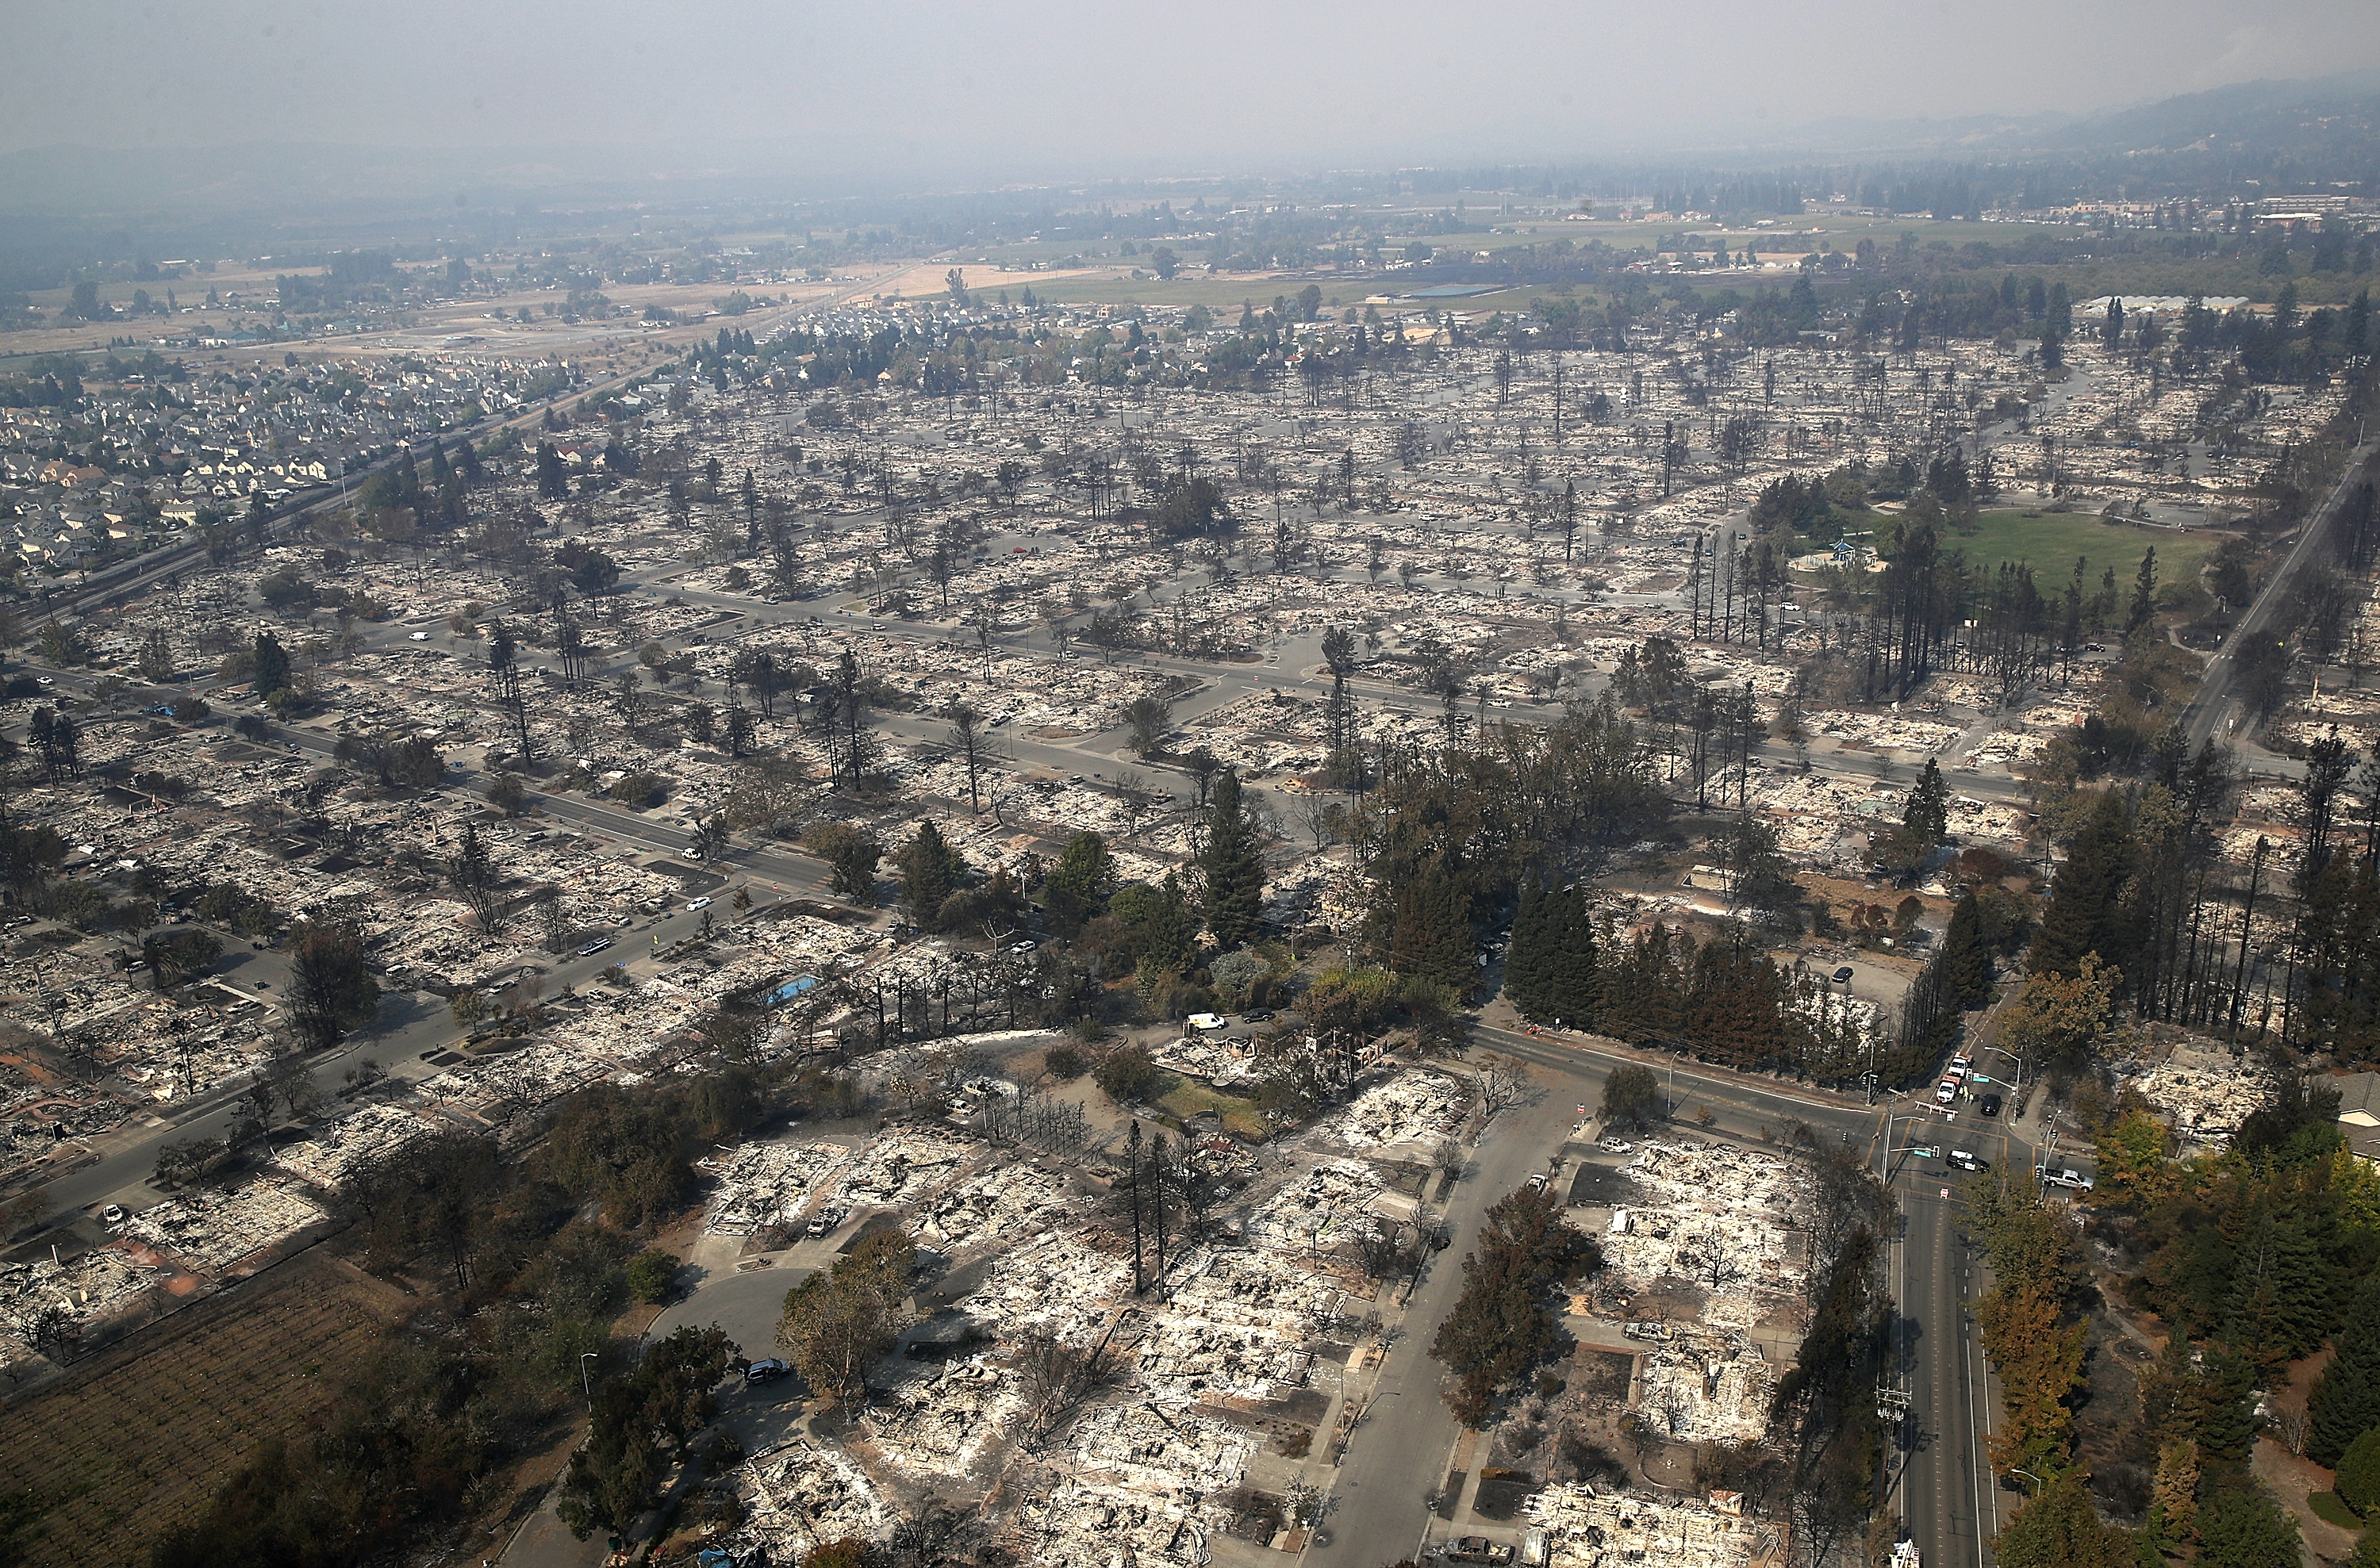 A view of hundreds of homes in the Coffey Park neighborhood that were destroyed by the Tubbs Fire on October 11, 2017 in Santa Rosa, California.